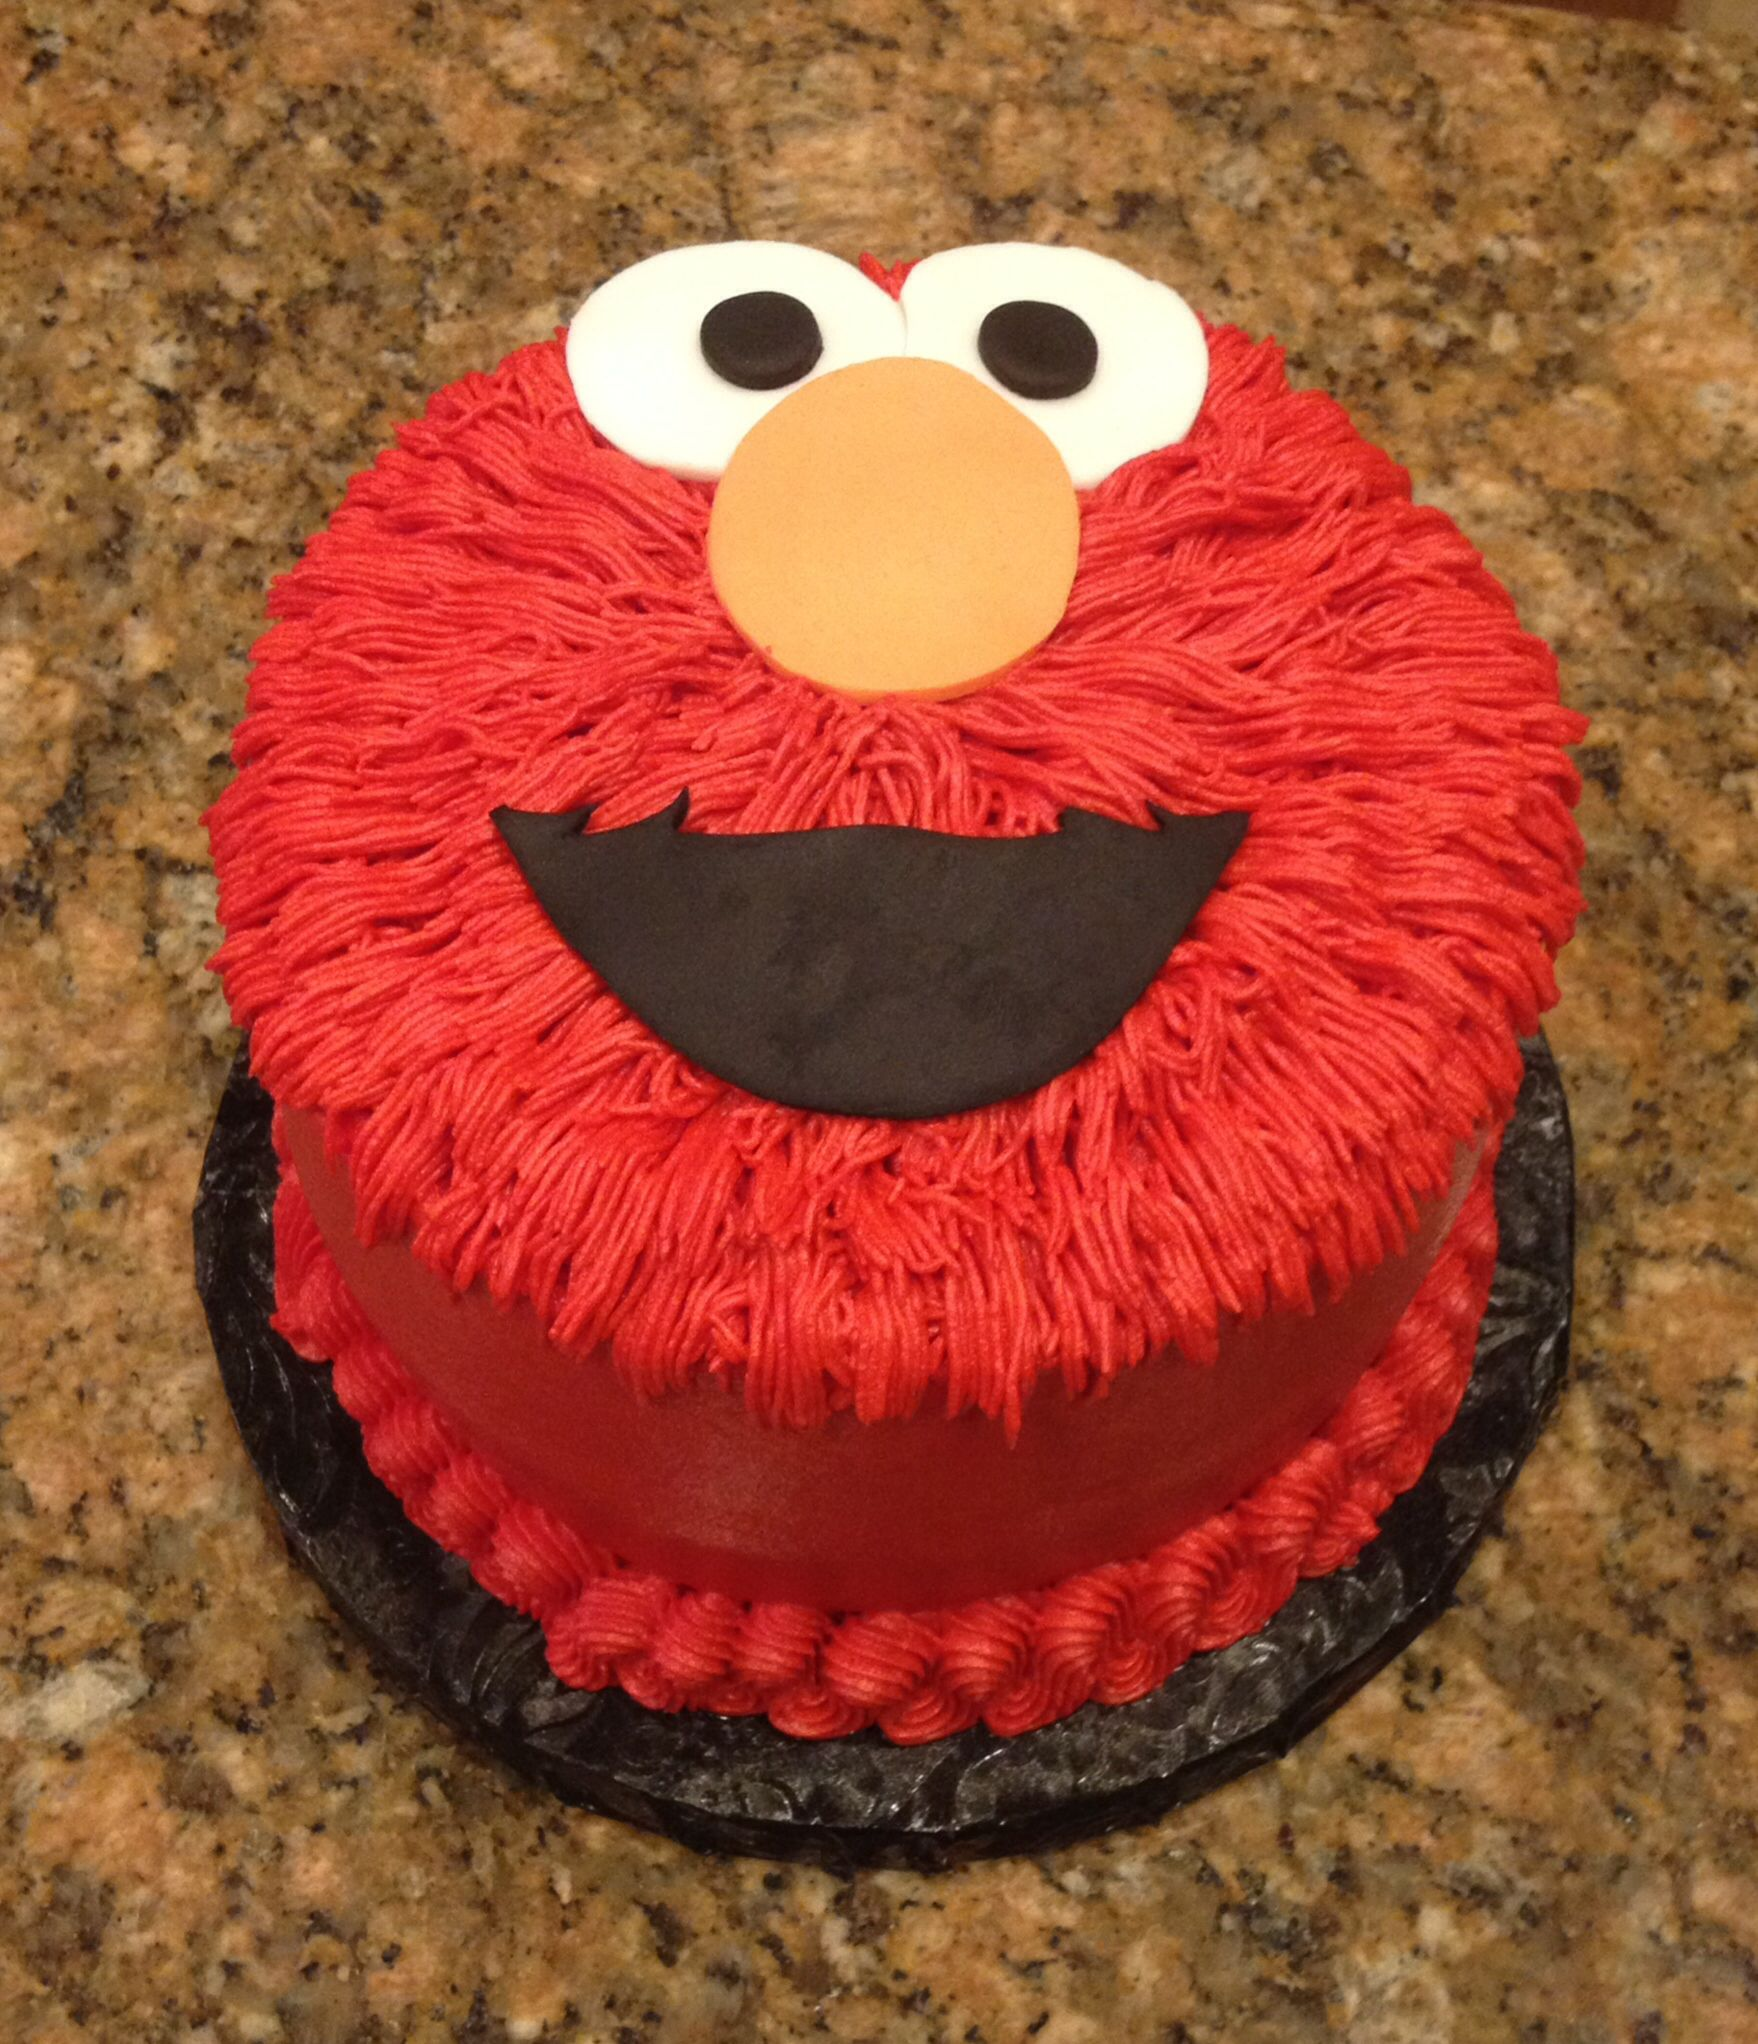 Elmo 1st birthday party ideas birthday party sesamestreet - Perfect For A Sesame Street First Birthday Party